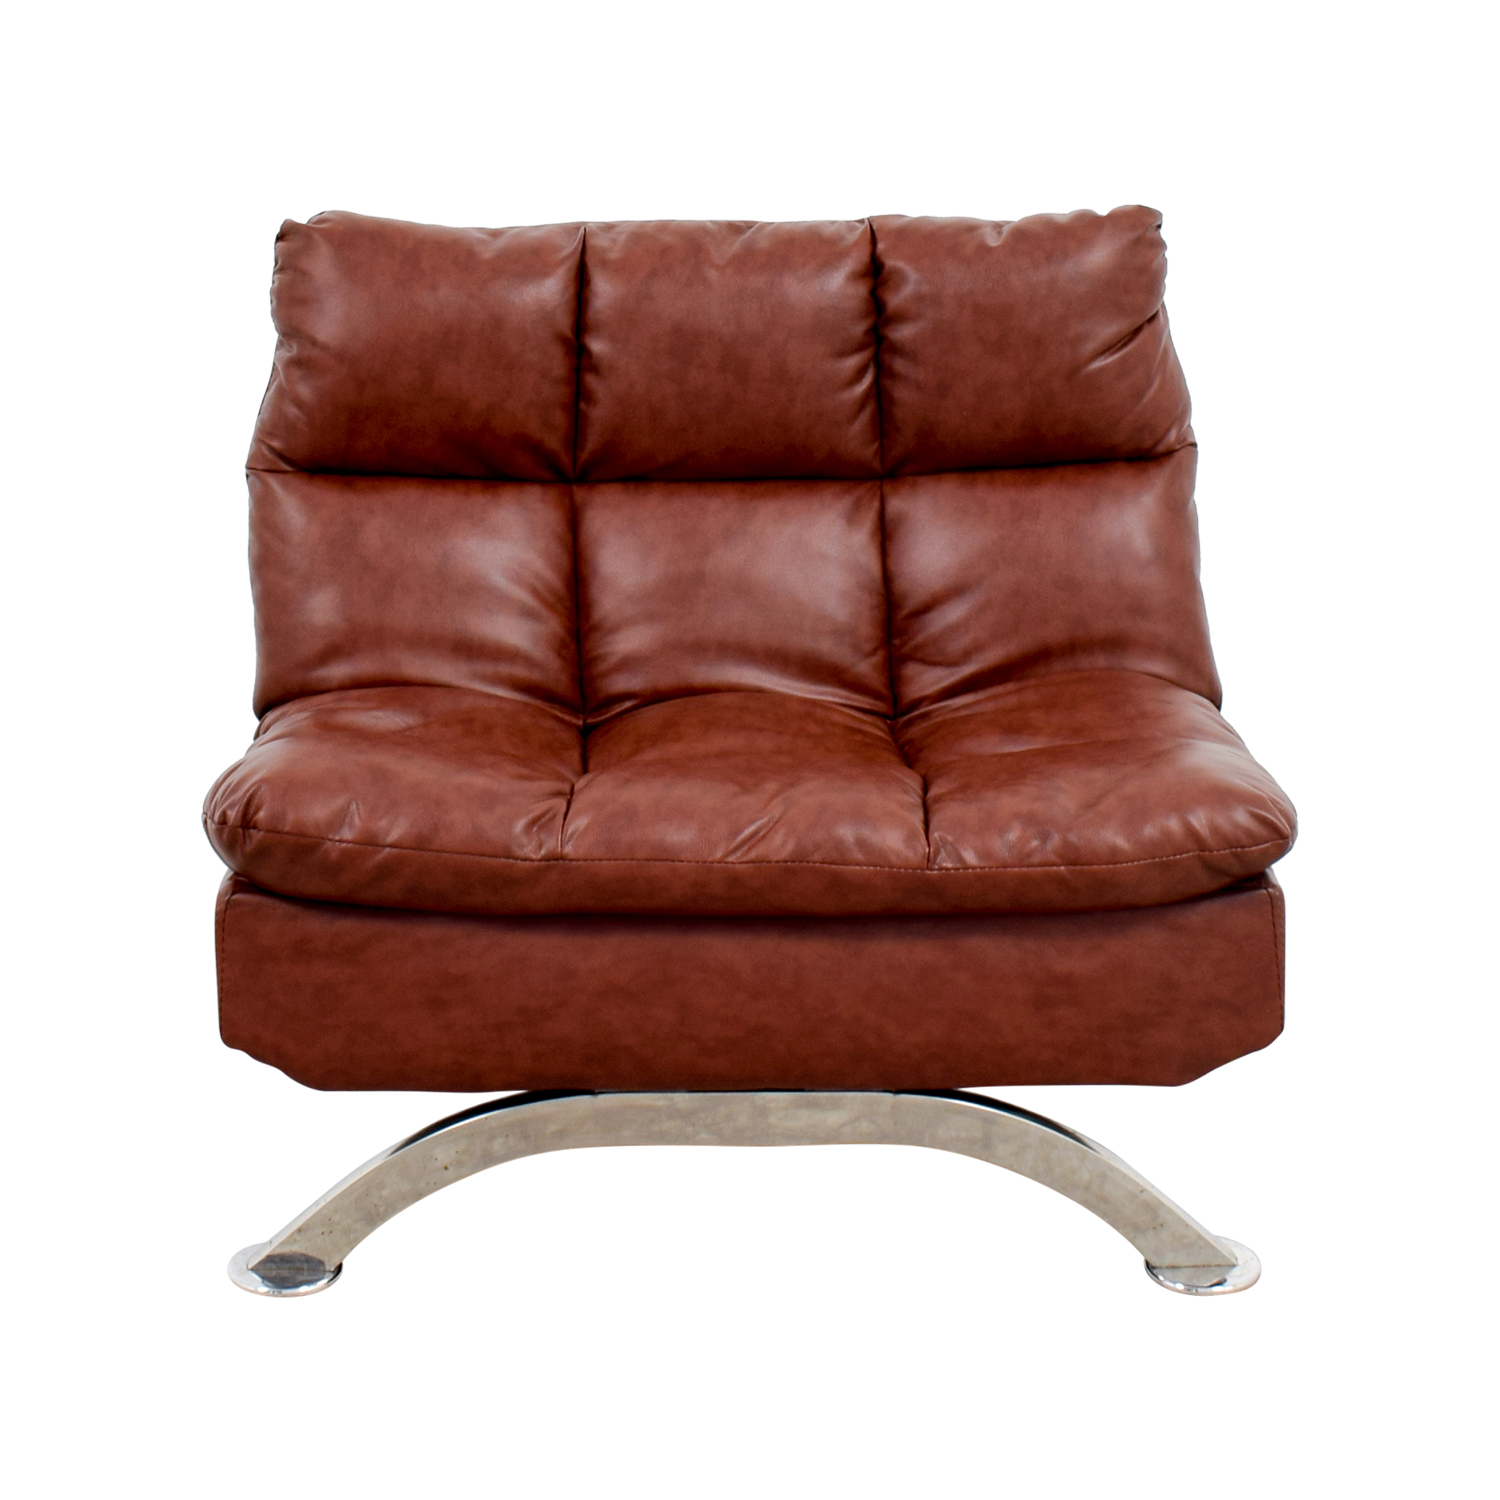 Wayfair Love Brown Leather Tufted Reclining Chair Accent Chairs